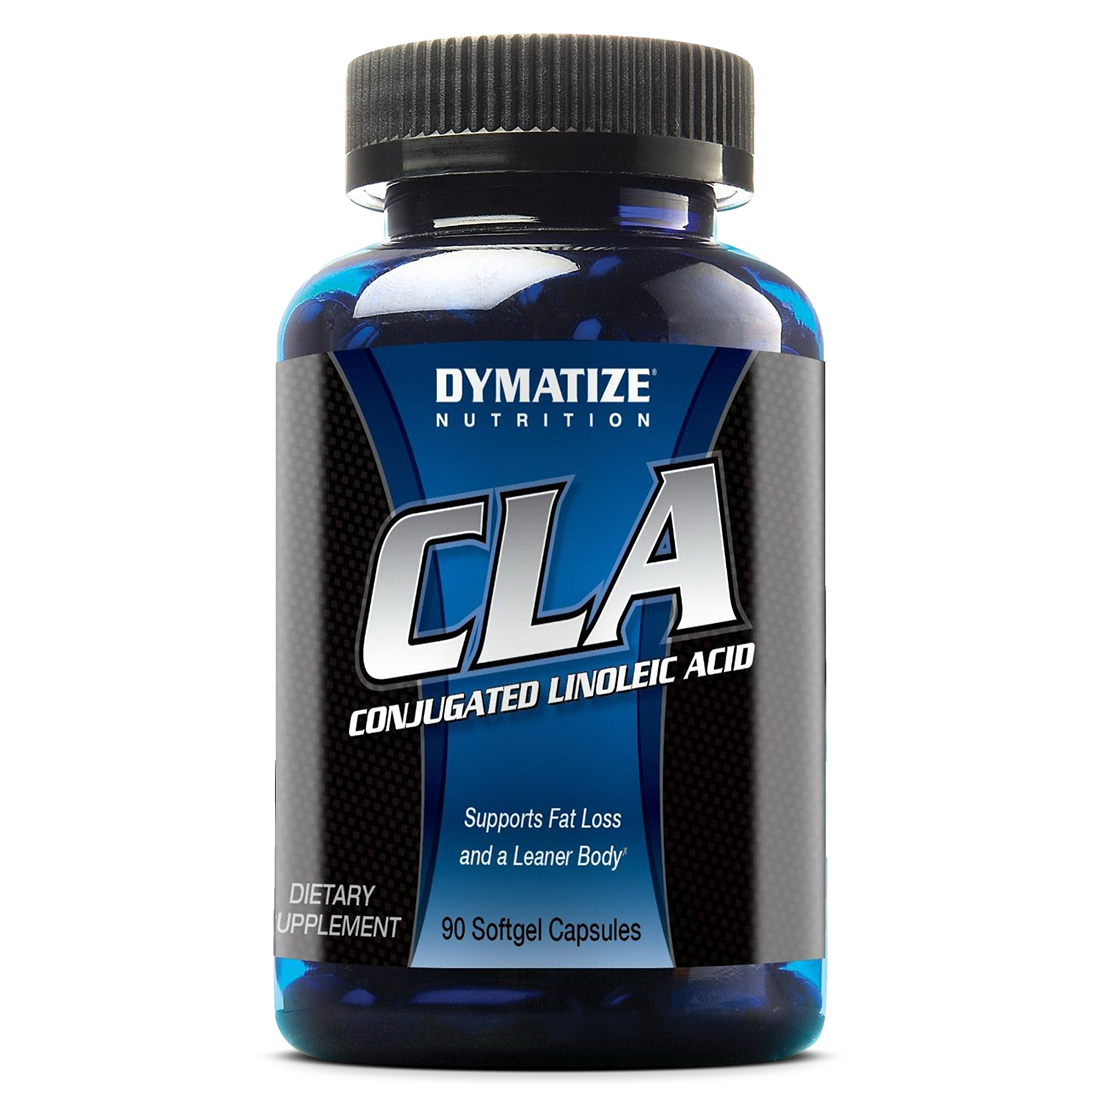 Supports Fat Loss